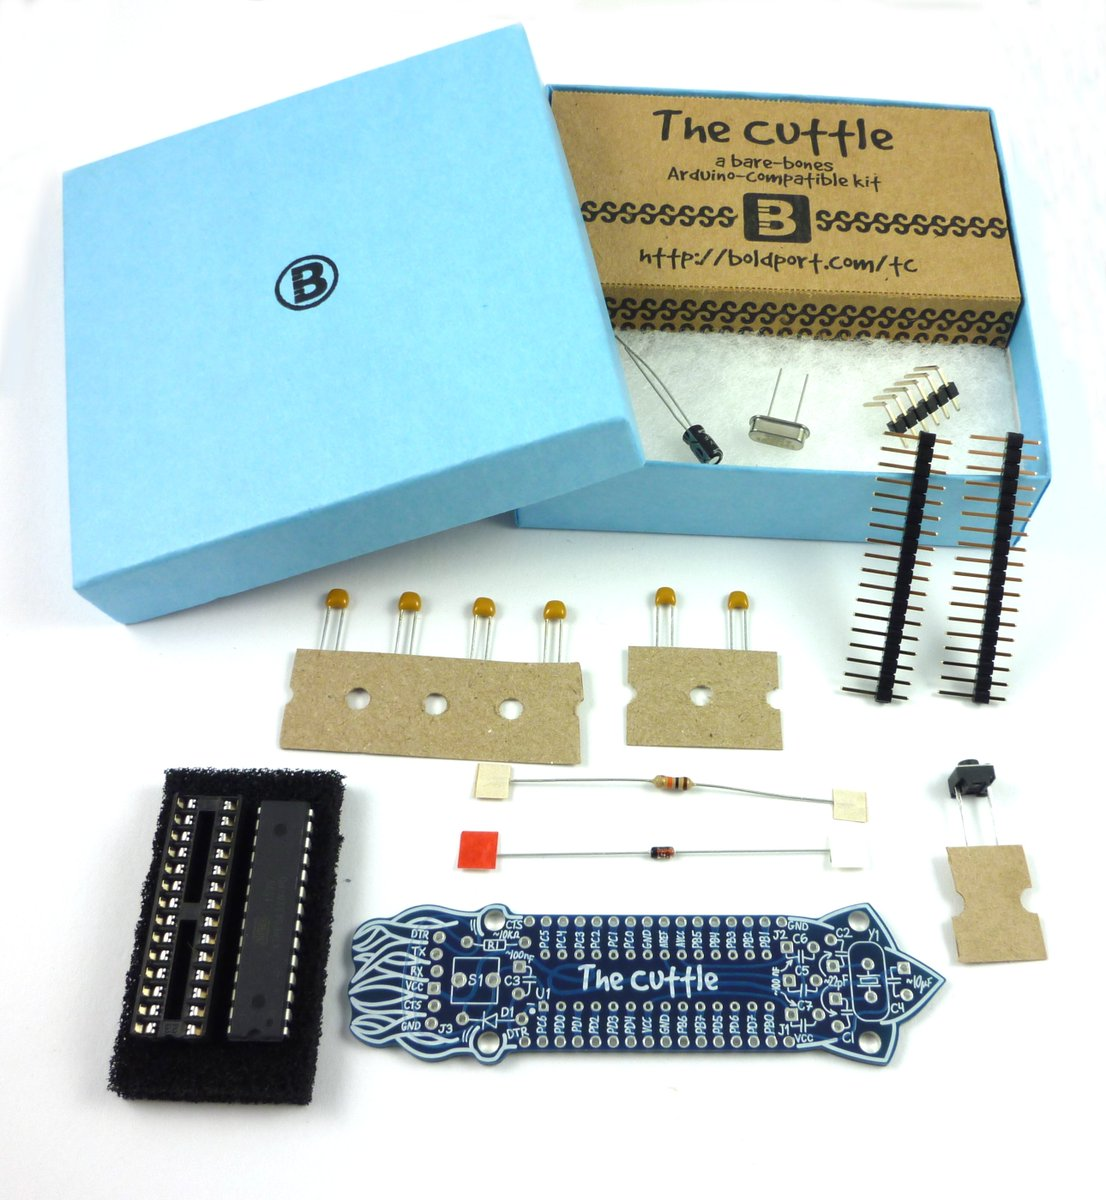 It says Cuttle but I see Cutie! :) RT @boldport: The Cuttle #BoldportClub Project #6